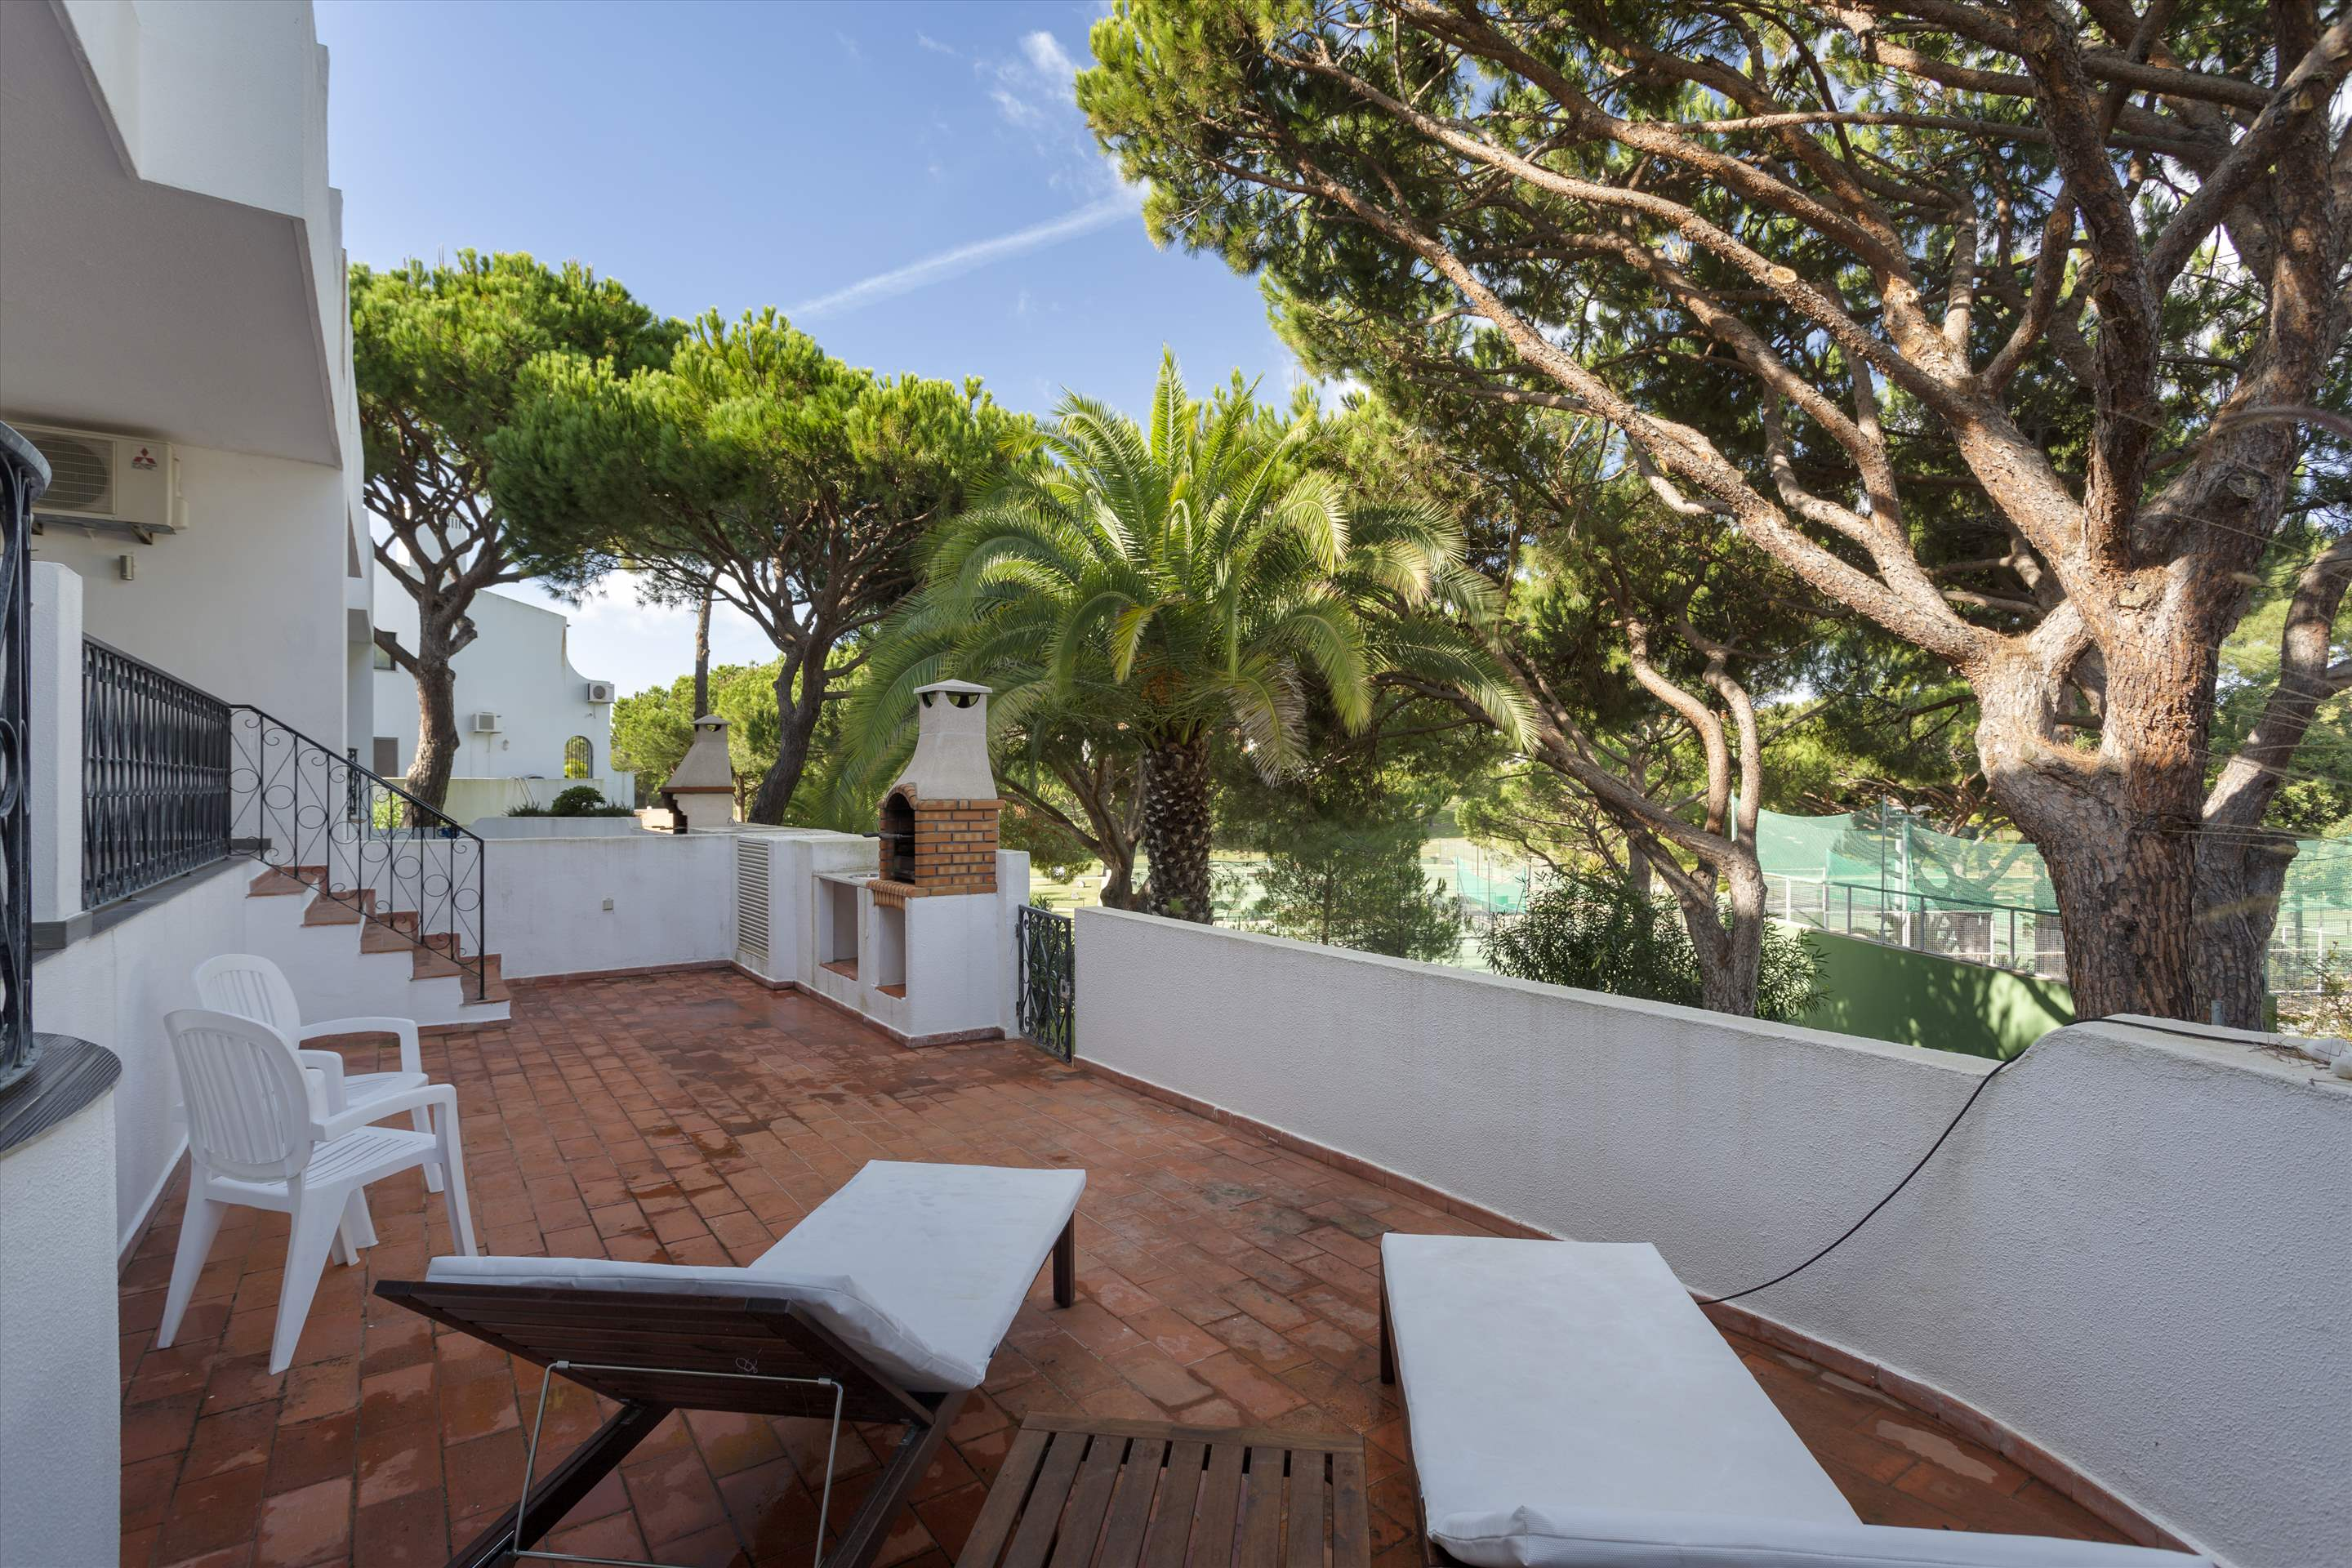 Apartment Academia, 3 bedroom apartment in Vale do Lobo, Algarve Photo #2